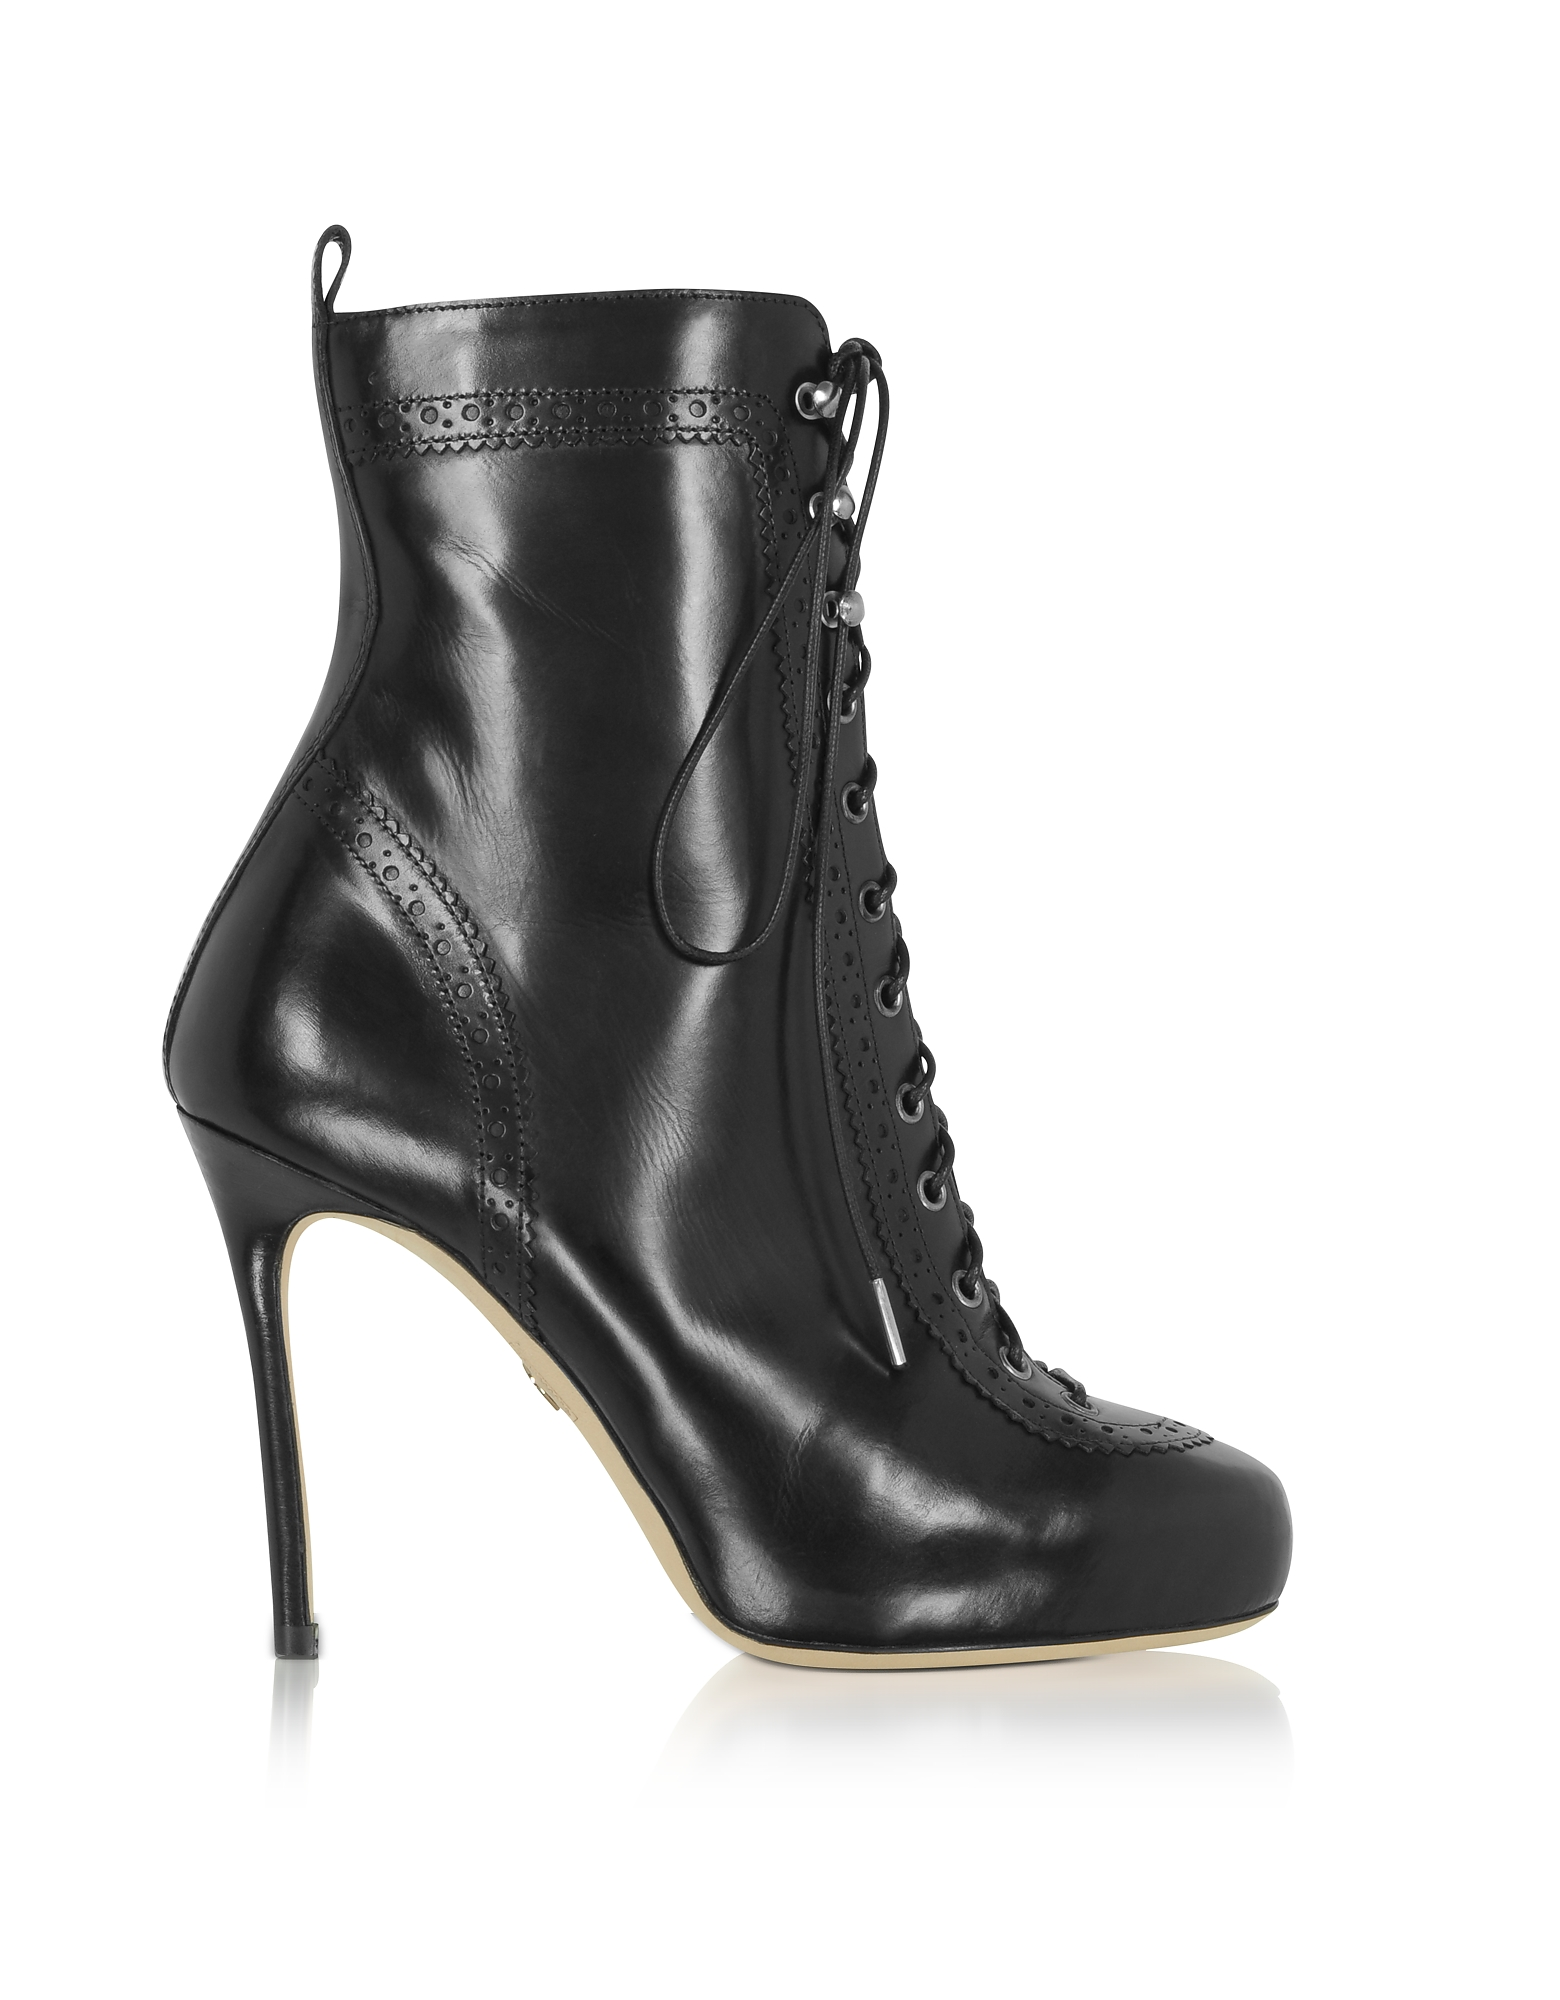 DSquared2 Shoes, Black Leather Witness High Heel Ankle Boots